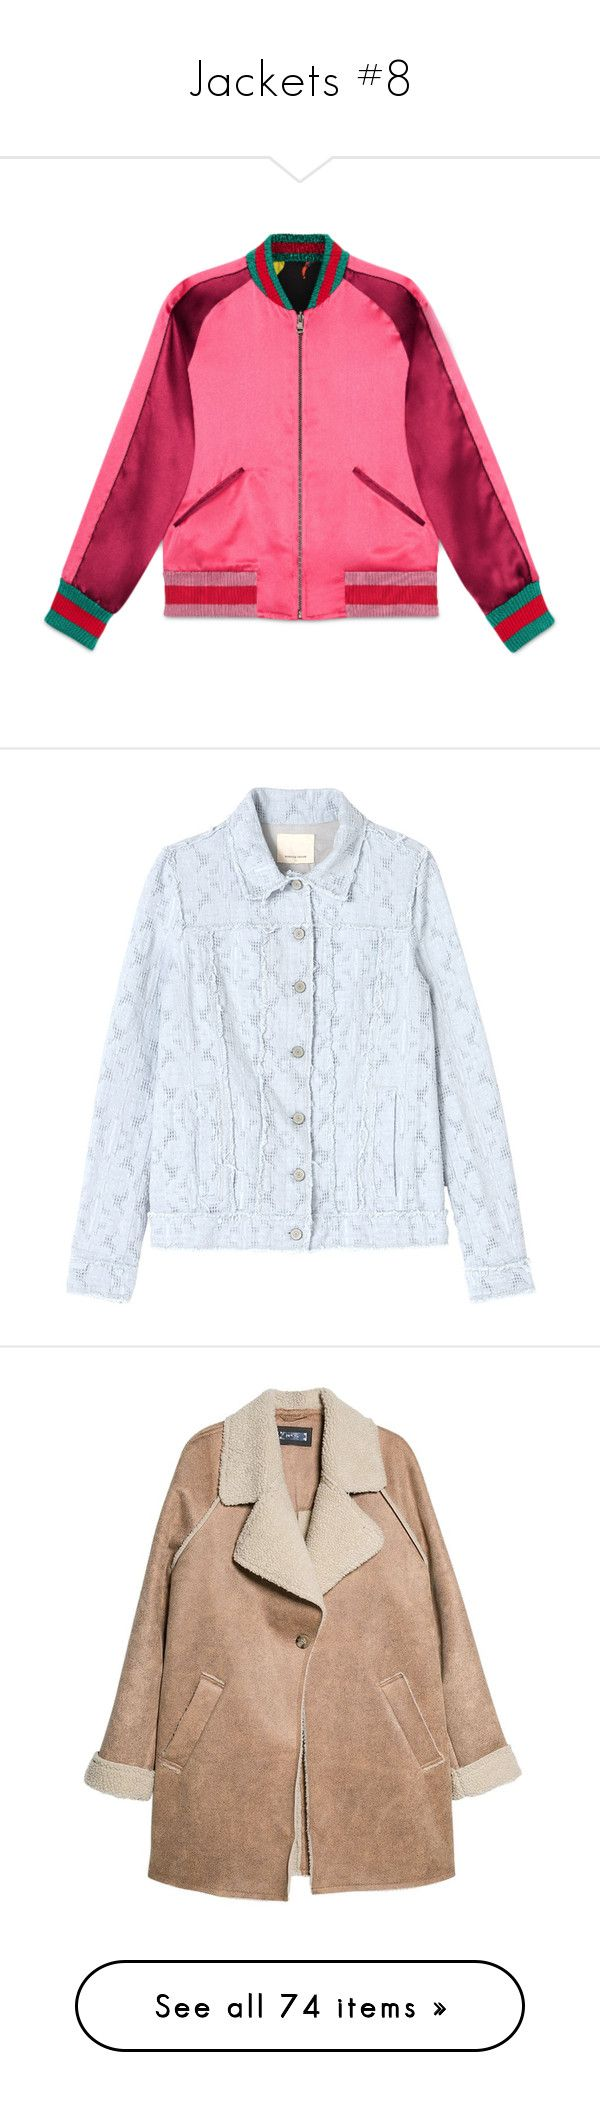 """""""Jackets #8"""" by li-nctzen ❤ liked on Polyvore featuring outerwear, jackets, gucci, tops, pink bomber jackets, floral-print bomber jackets, zipper jacket, zip jacket, reversible bomber jacket and fresh air"""